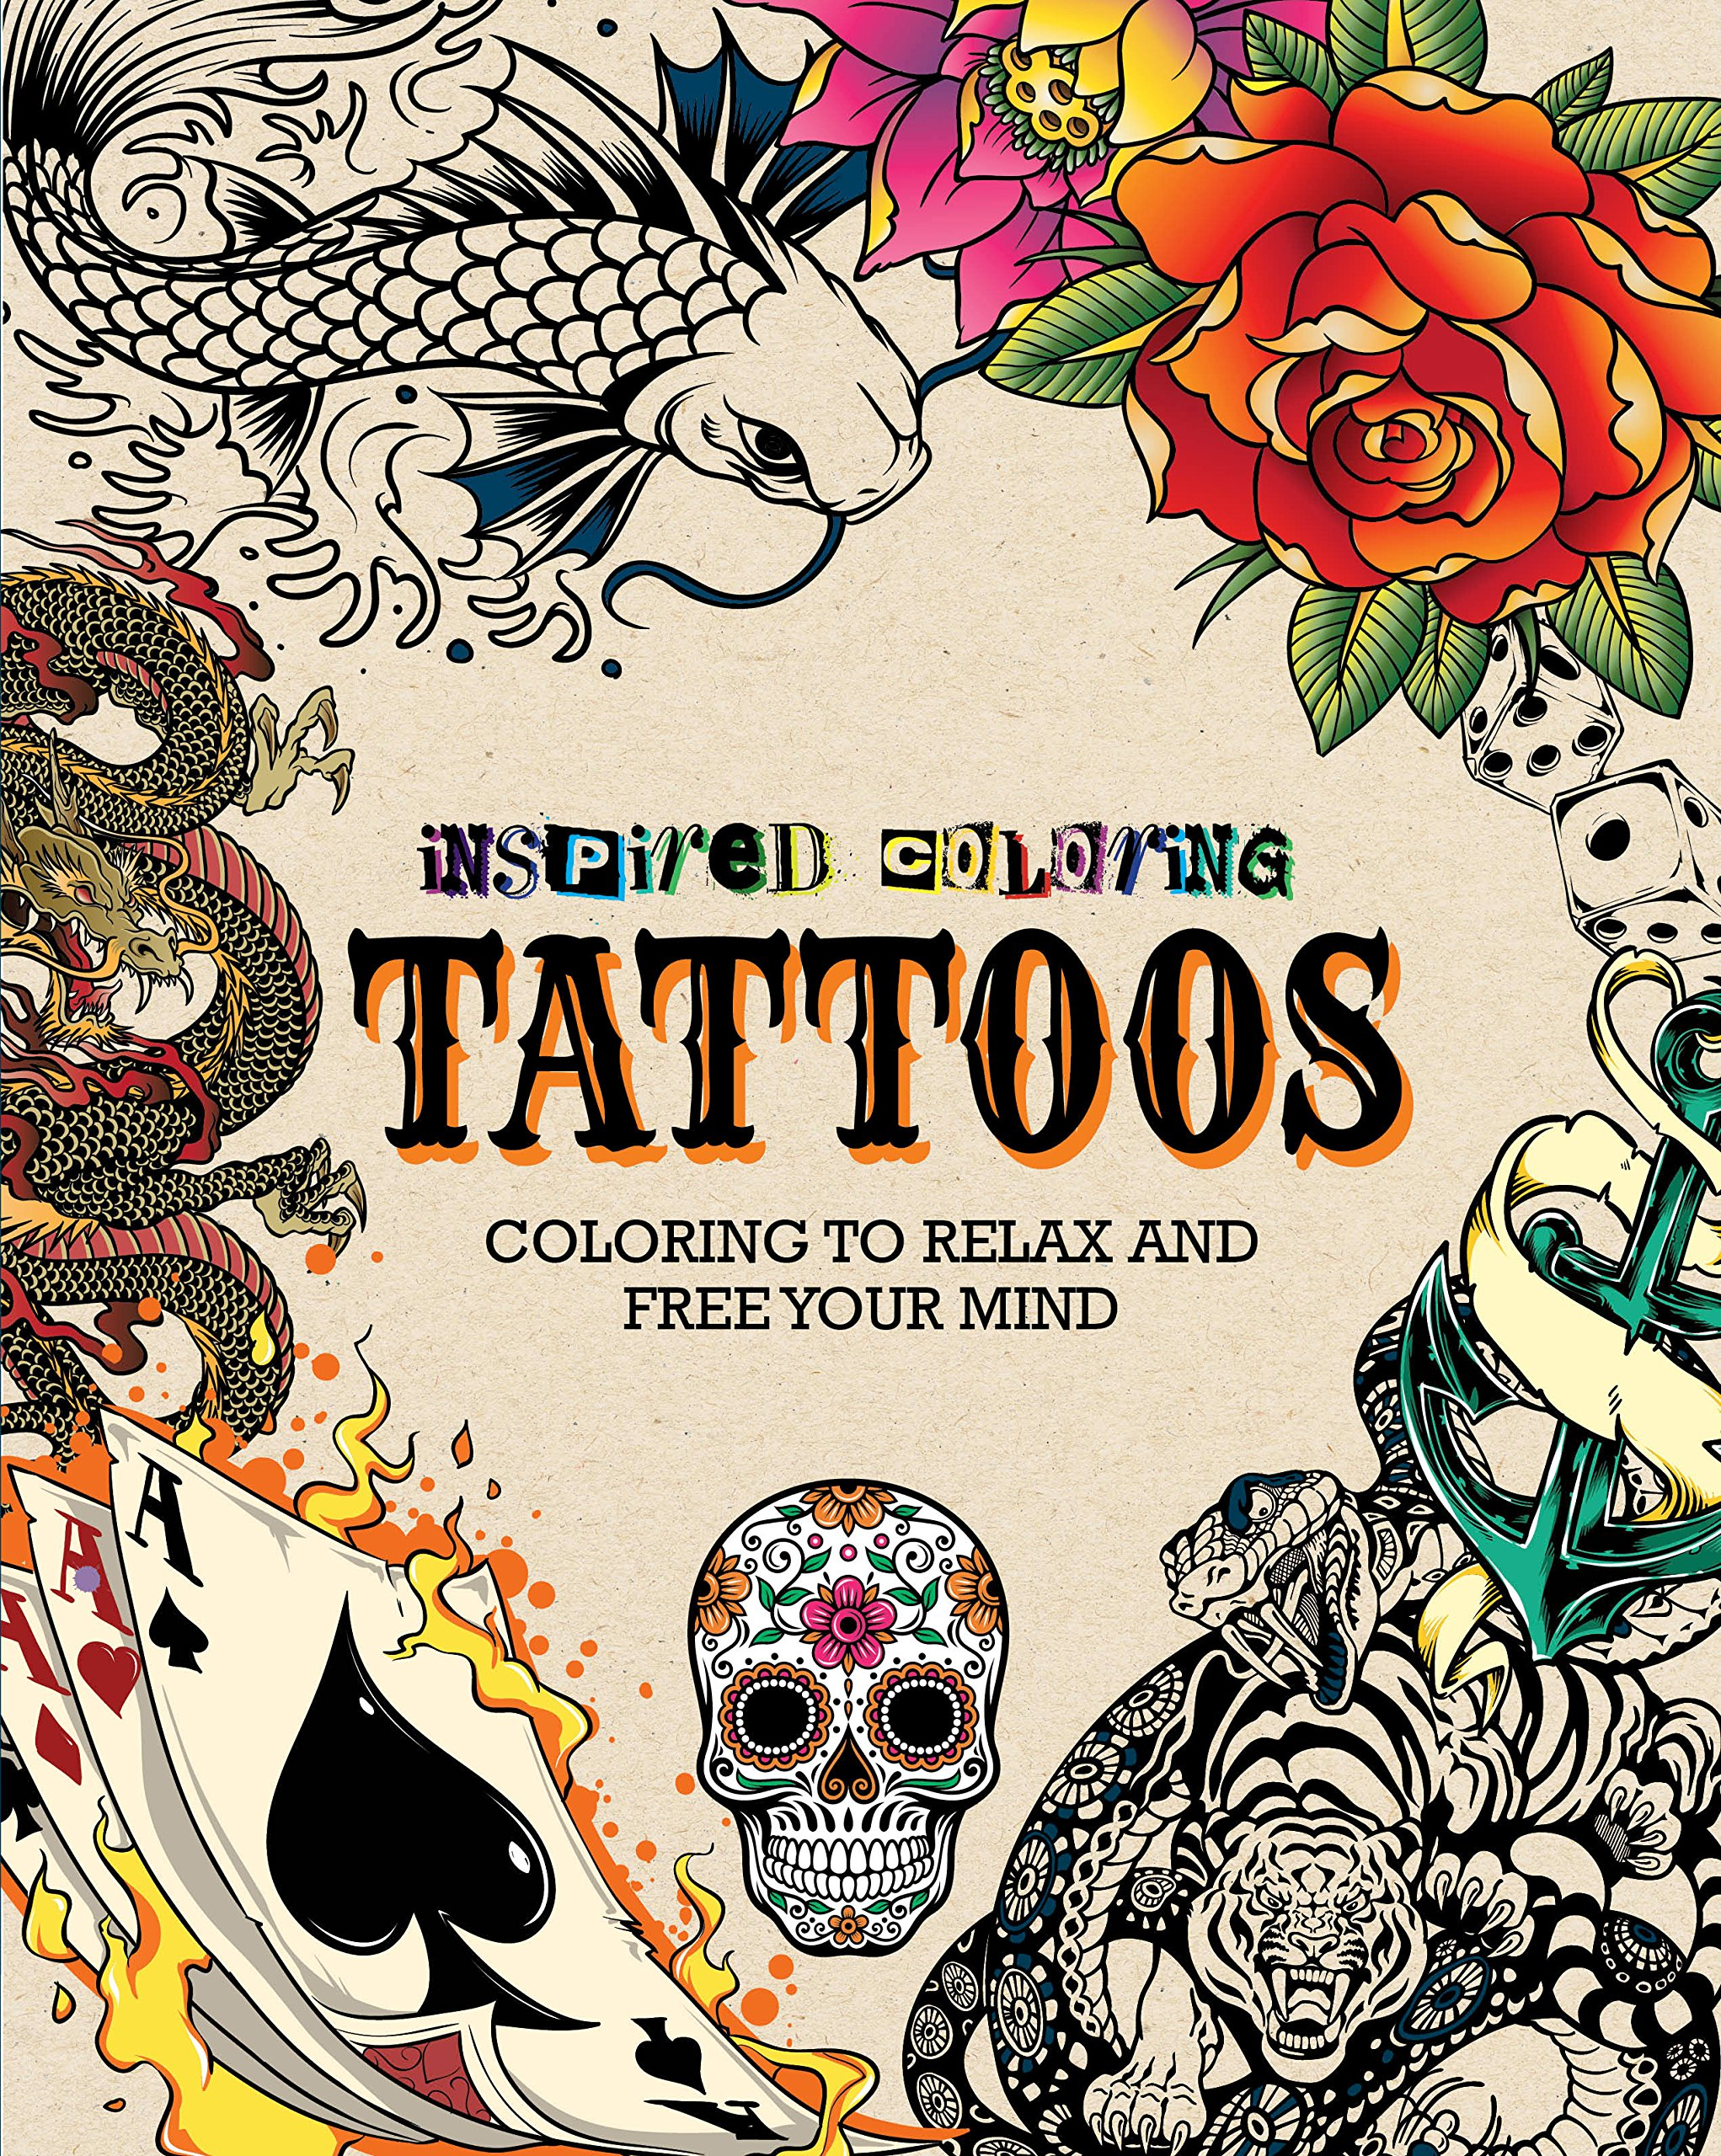 tattoos inspired coloring parragon books 9781472392640 amazoncom books - Tattoo Coloring Books